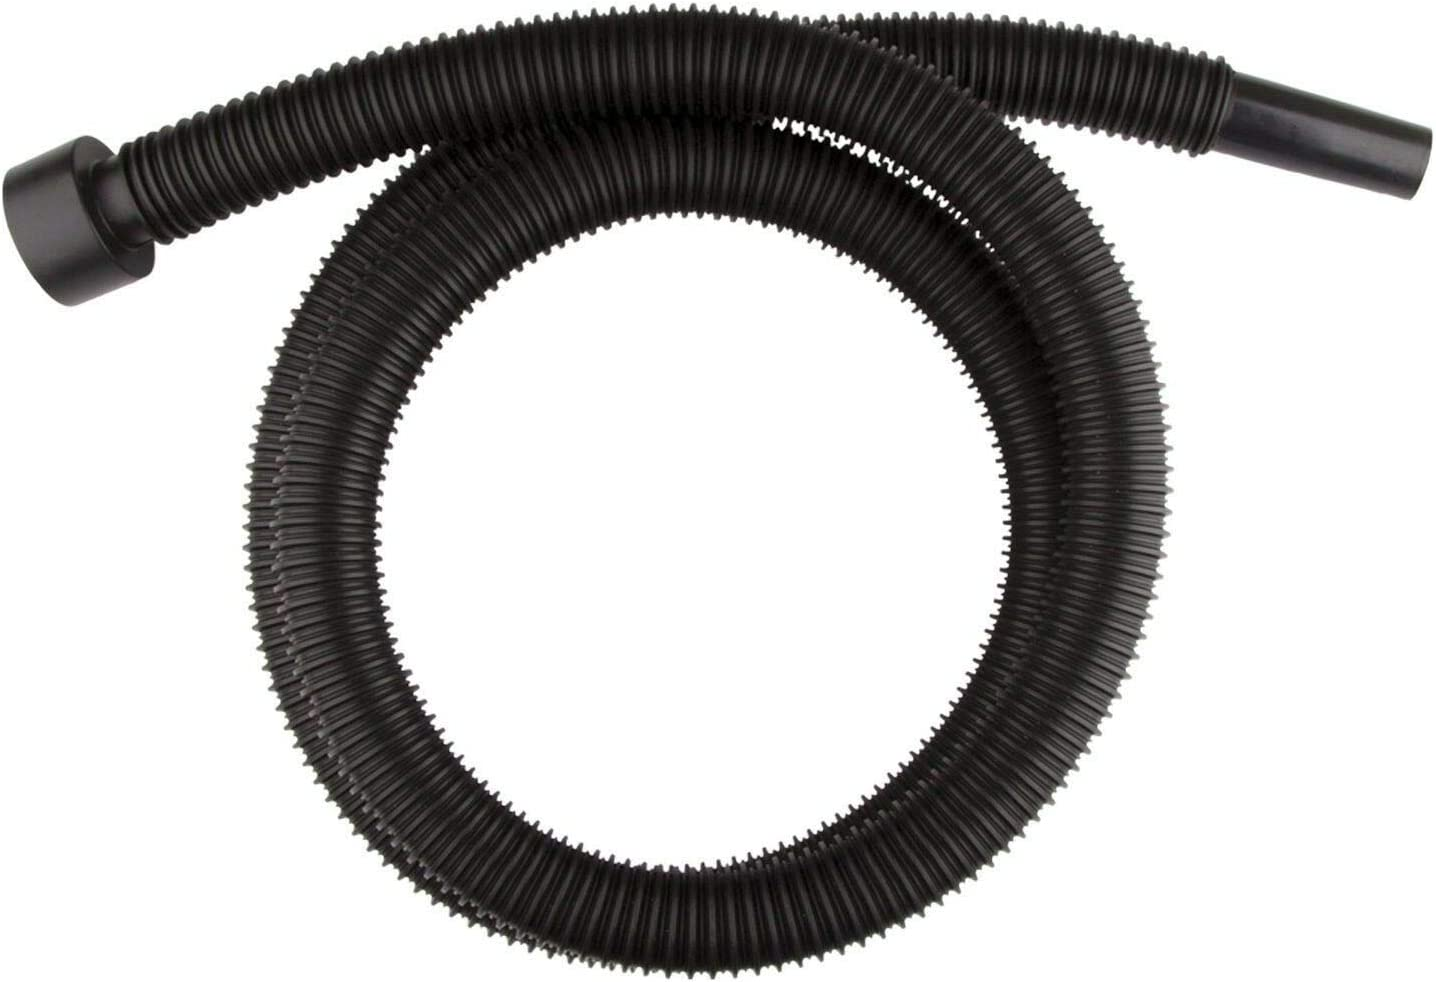 New products, world's highest quality popular! Indianapolis Mall Hose 10FT KTWT for Shop Vac Craftsman Dry 1 Wet Vacs Ridgid 2